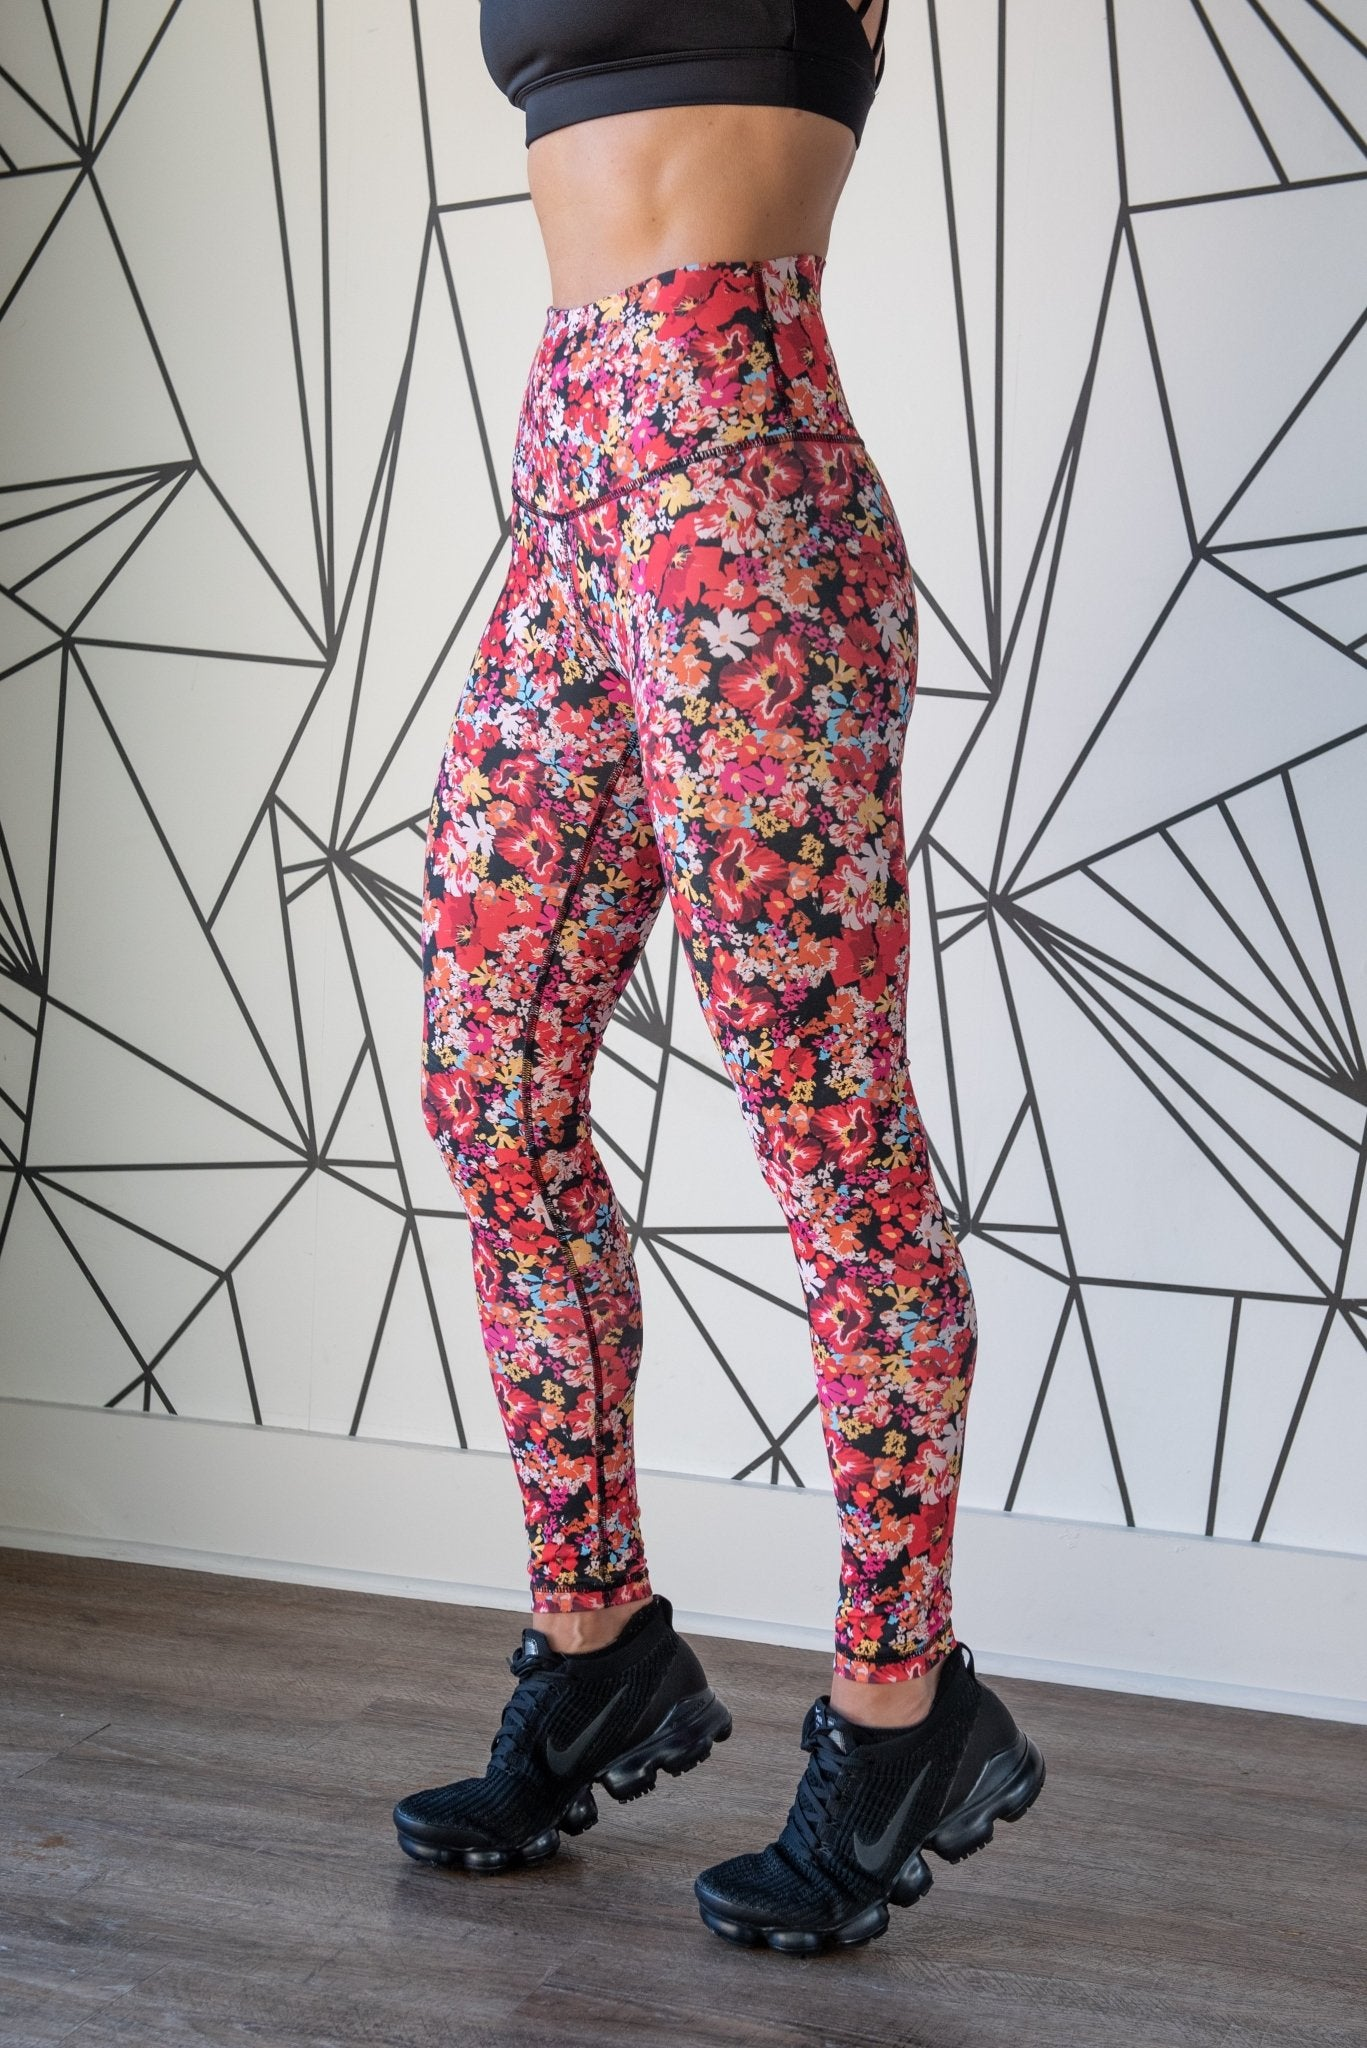 DYI x Erin Oprea Printed Signature Tight Bursting Blooms, tights - shopdyi.com